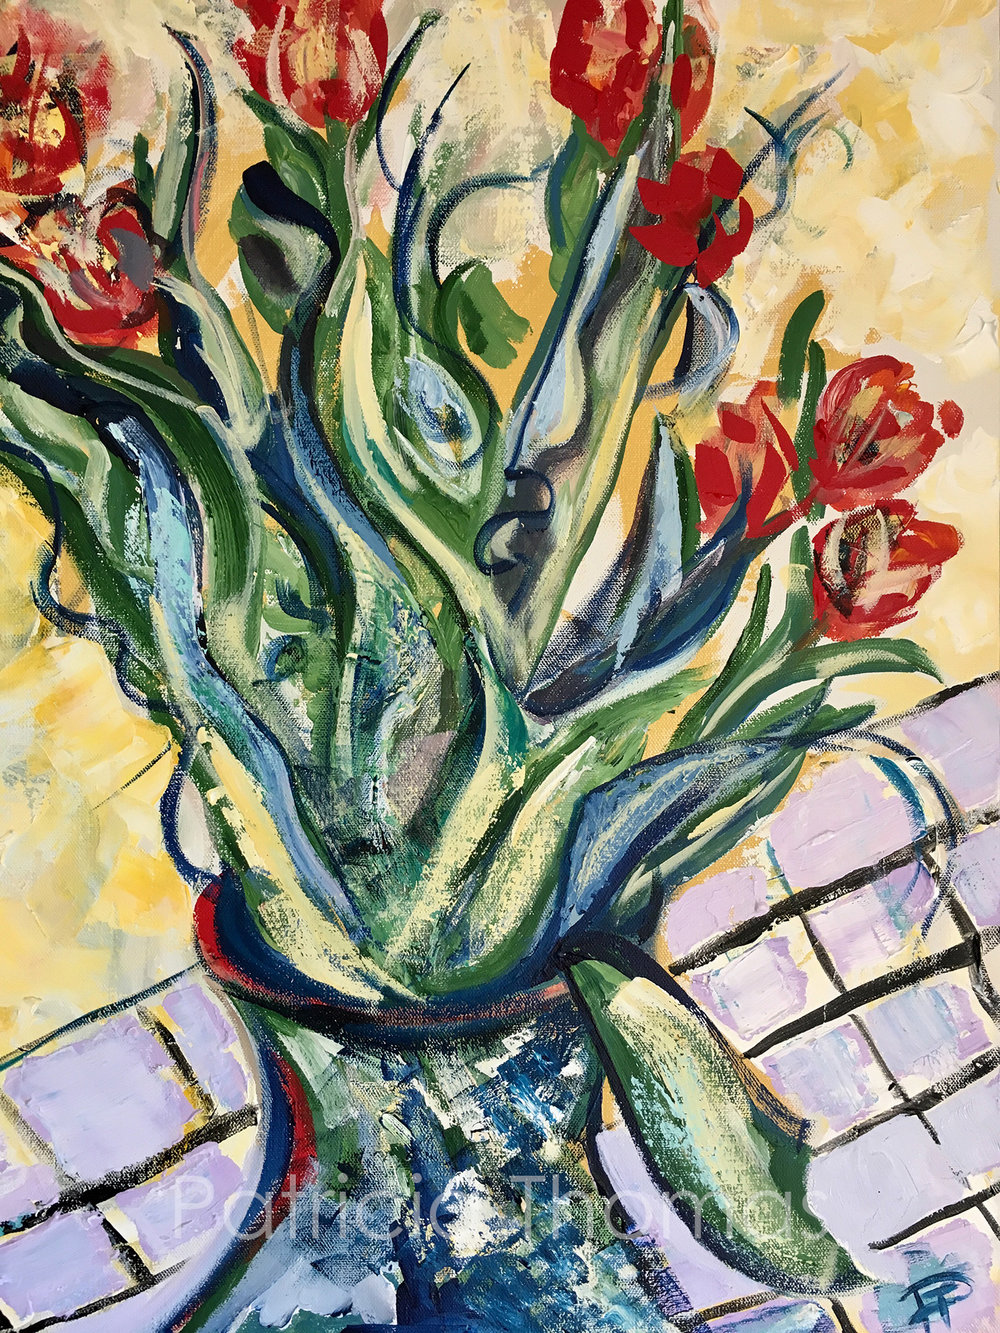 REd Tulips and Blue Leaves.jpg